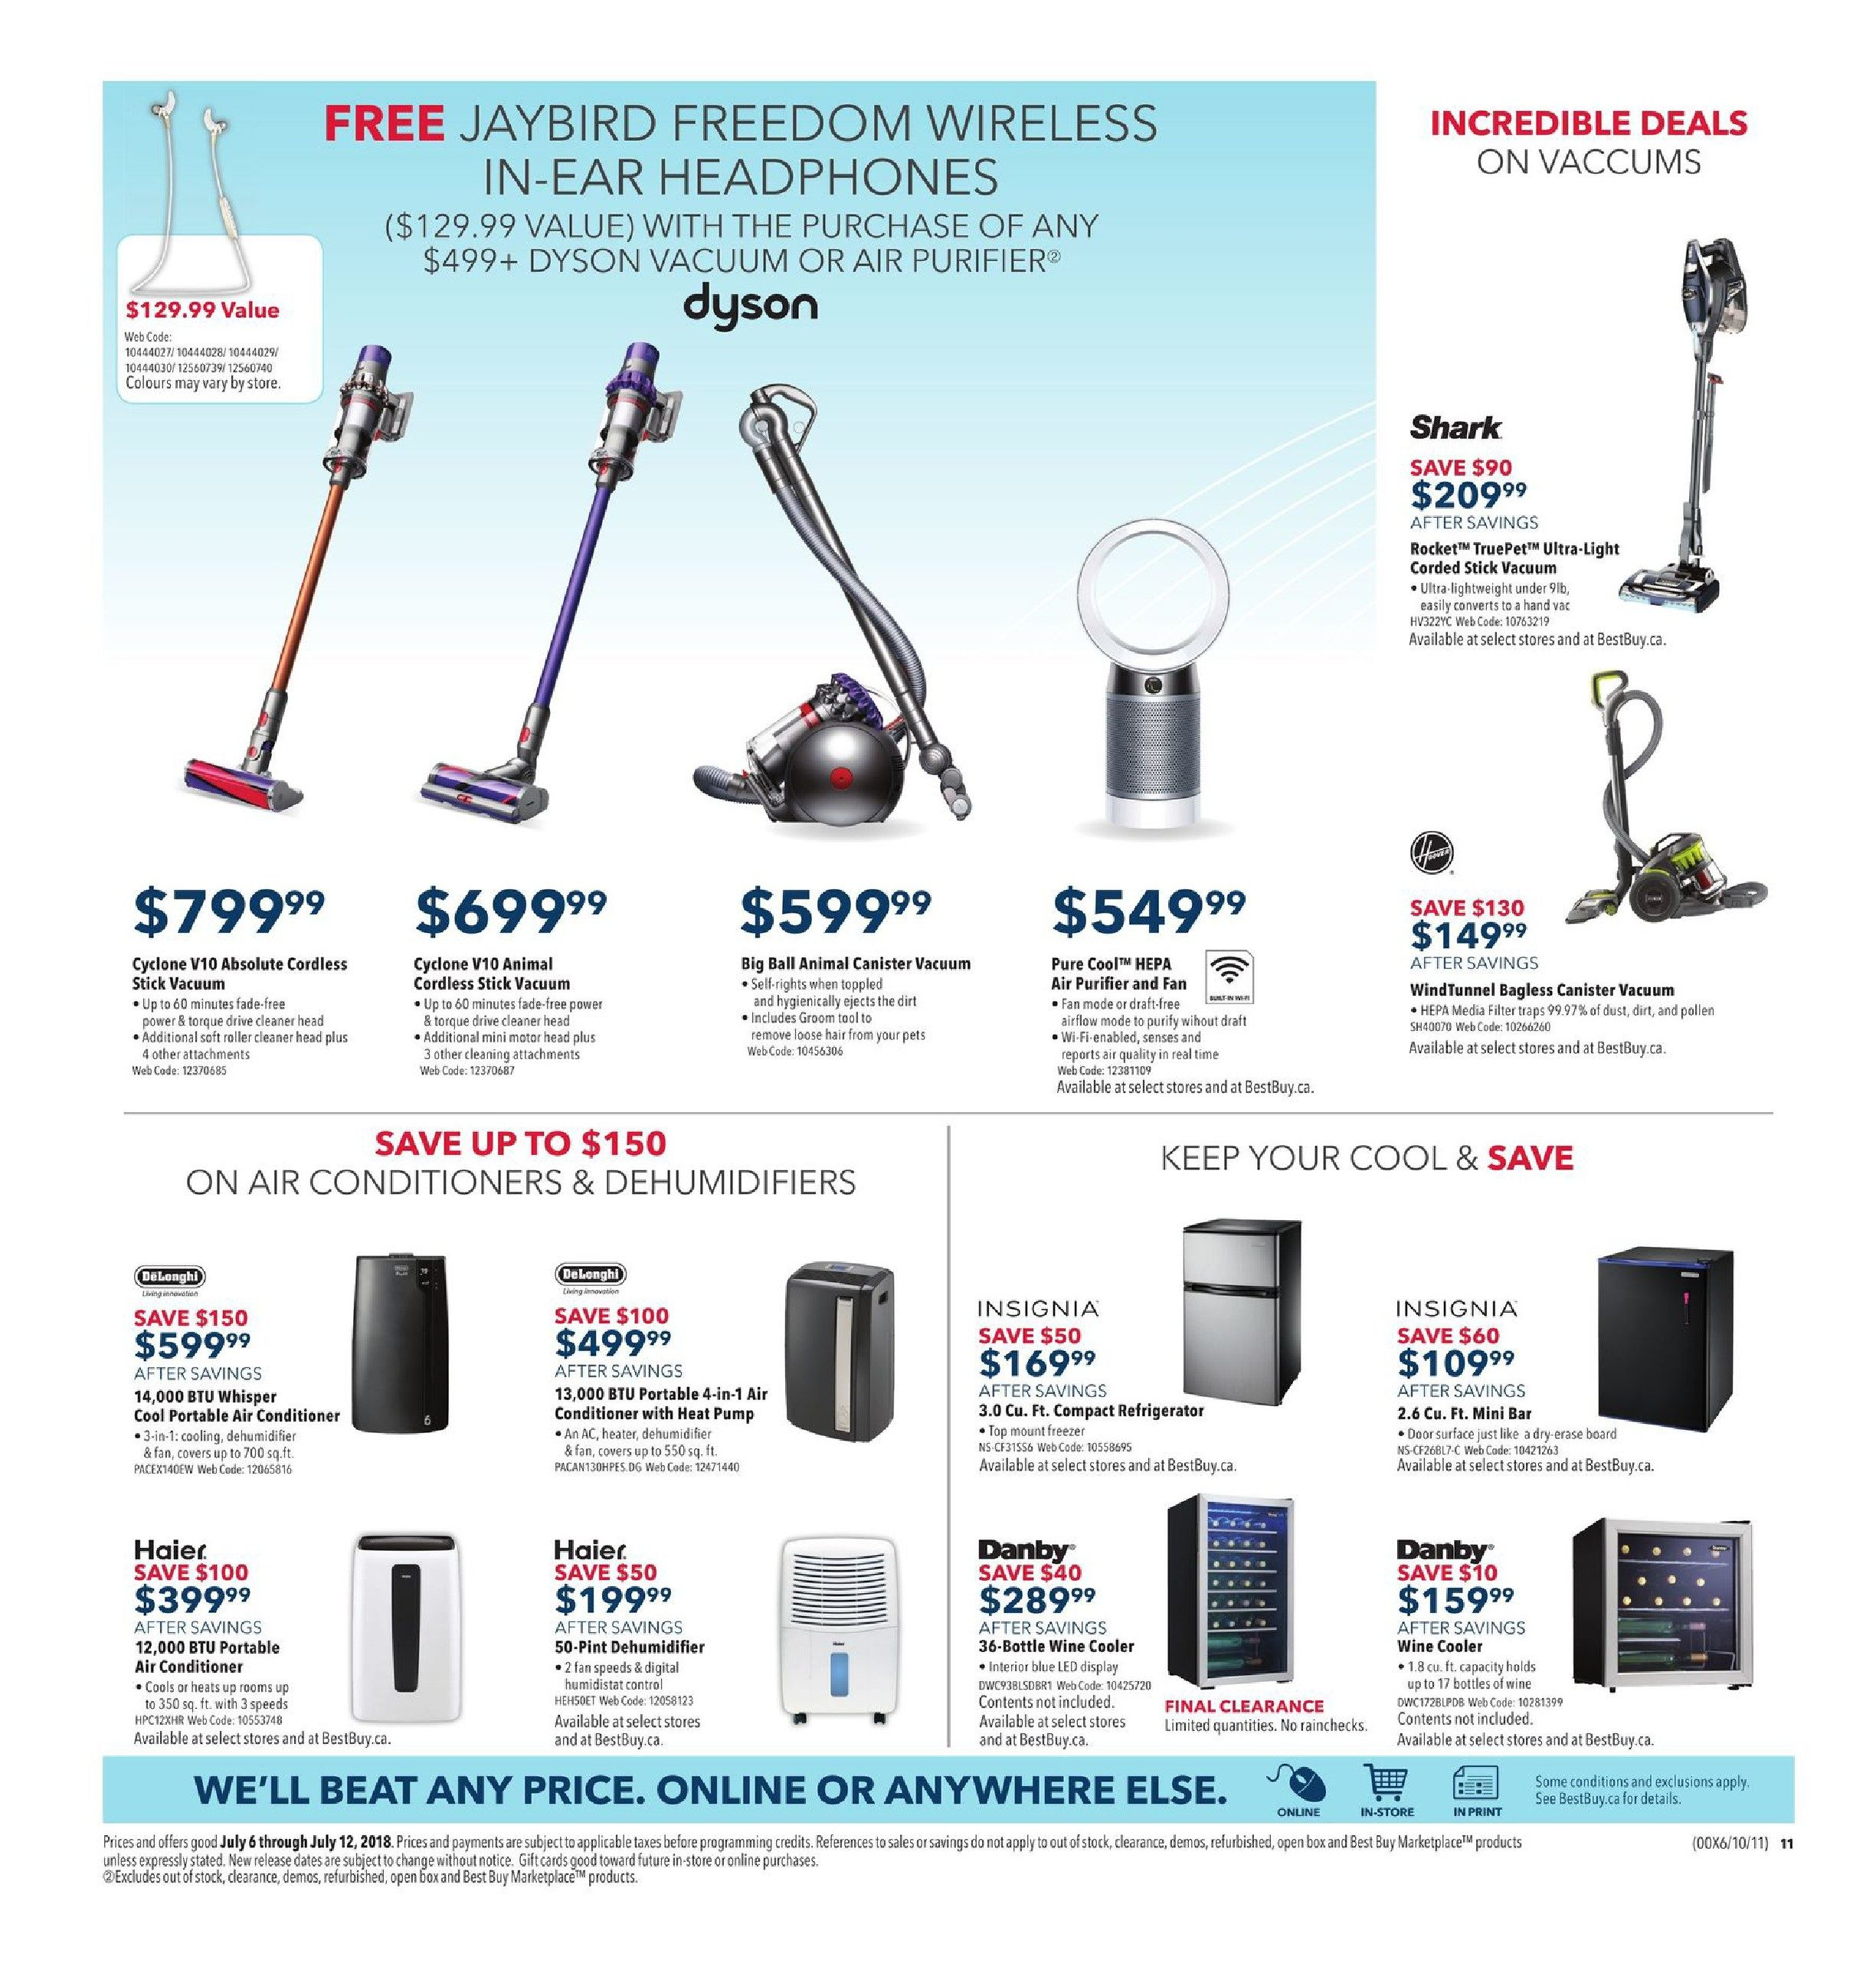 Best buy weekly flyer weekly hot tech at even hotter savings best buy weekly flyer weekly hot tech at even hotter savings jul 6 12 redflagdeals fandeluxe Images